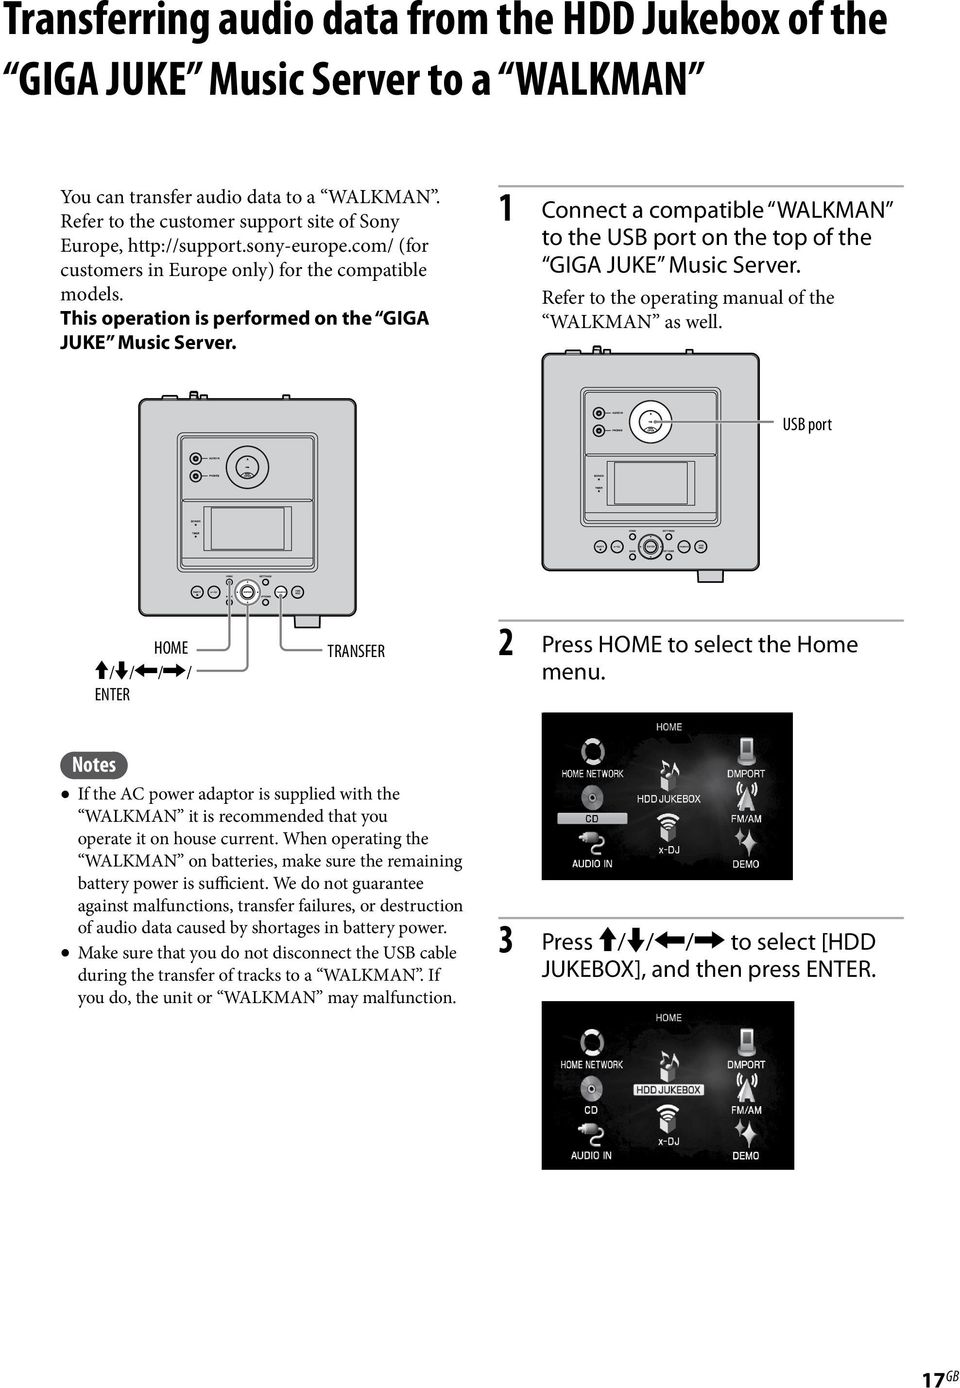 1 Connect a compatible WALKMAN to the USB port on the top of the GIGA JUKE Music Server. Refer to the operating manual of the WALKMAN as well.